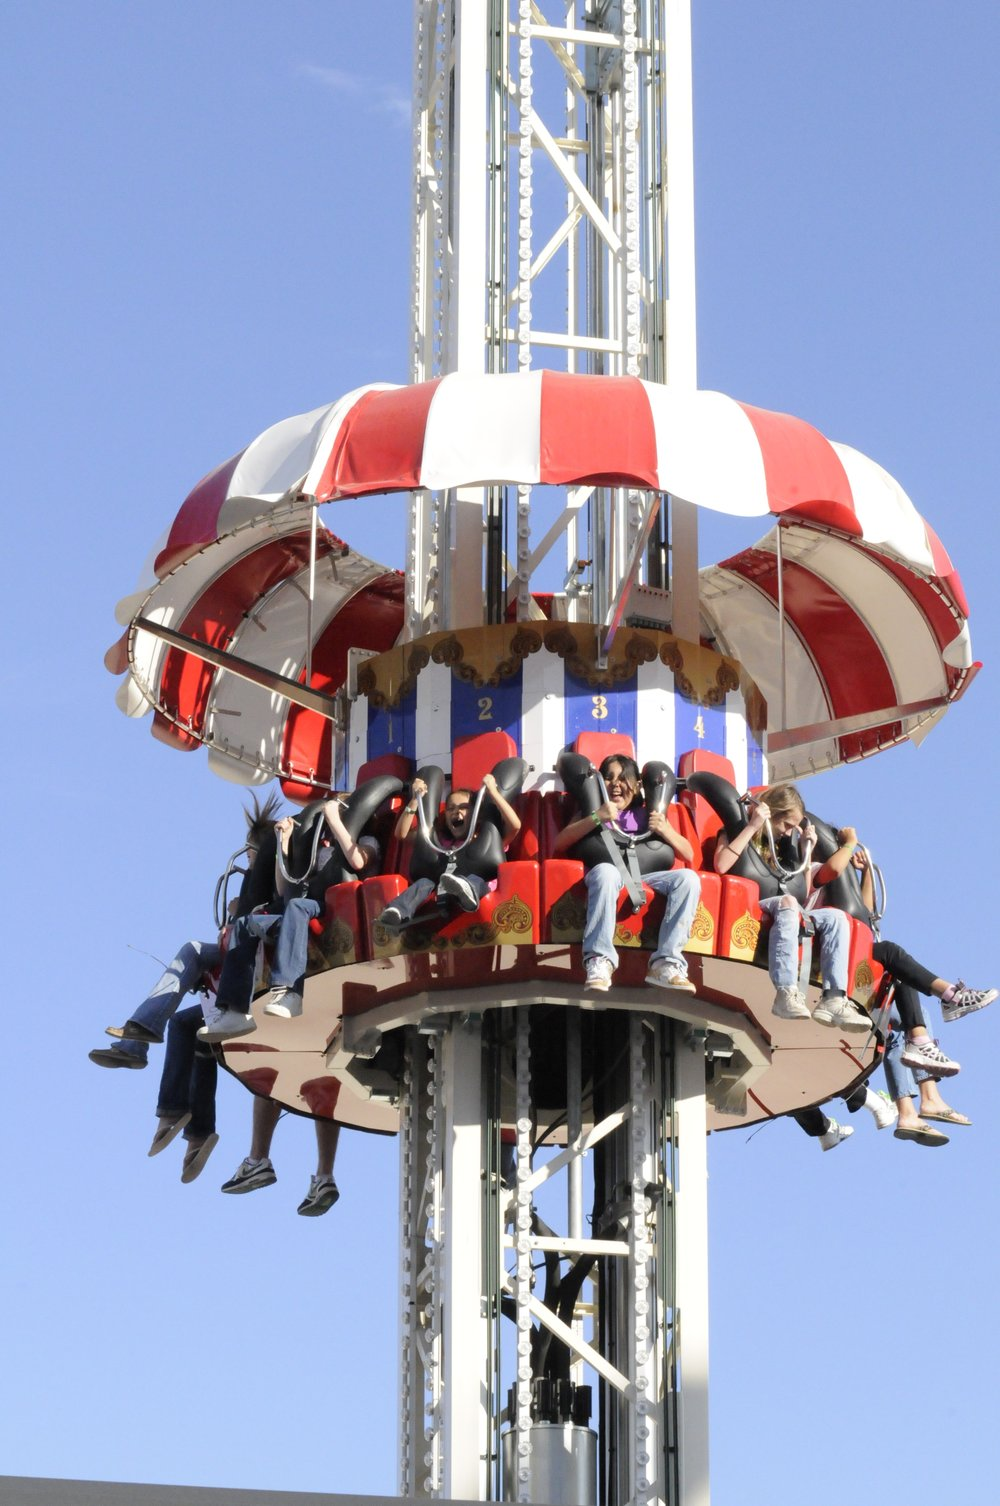 Extreme Group Trip  - Minimum 15 Participating Group Members$13.99/person for 4 hours$15.99/person for 5 hoursor $19.99/person for all day Unlimited Access to All Attractions: Switchback Roller Coaster, Dizzy Toucan, Bungee Trampoline, Parachute Drop, Rock-Climbing Wall, Silo Climb, MaxFlight Simulator, Jungle Playland, Video Games, and Go-Karts. All water attractions are also included when available (March through September, weather permitting). Add Pizza for $5.00 per person (2 slices of pizza and a medium drink each). One adult wristband will be provided free for every 10 children/group members to participate. Other adults (18+) may come in for free to watch. Additional adult bands are the same price as the children's bands for those wishing to participate.  For further information or to book a group, please call (830)386-0151.